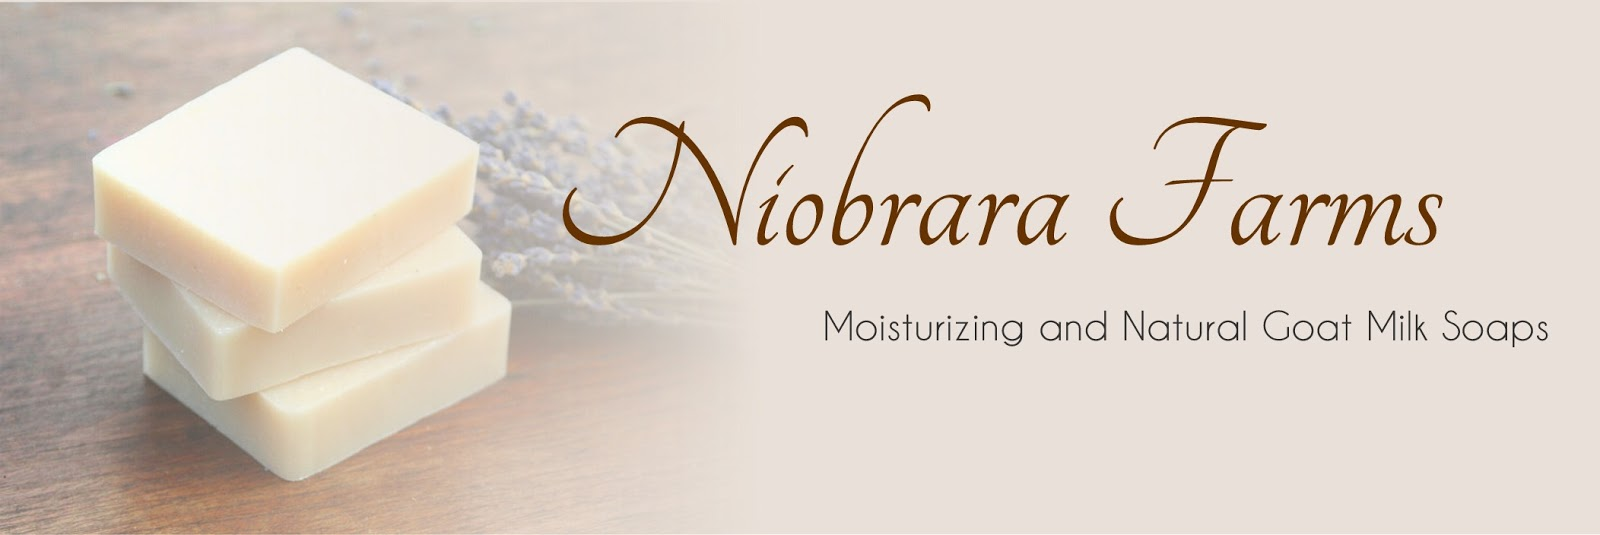 https://www.facebook.com/NiobraraFarms